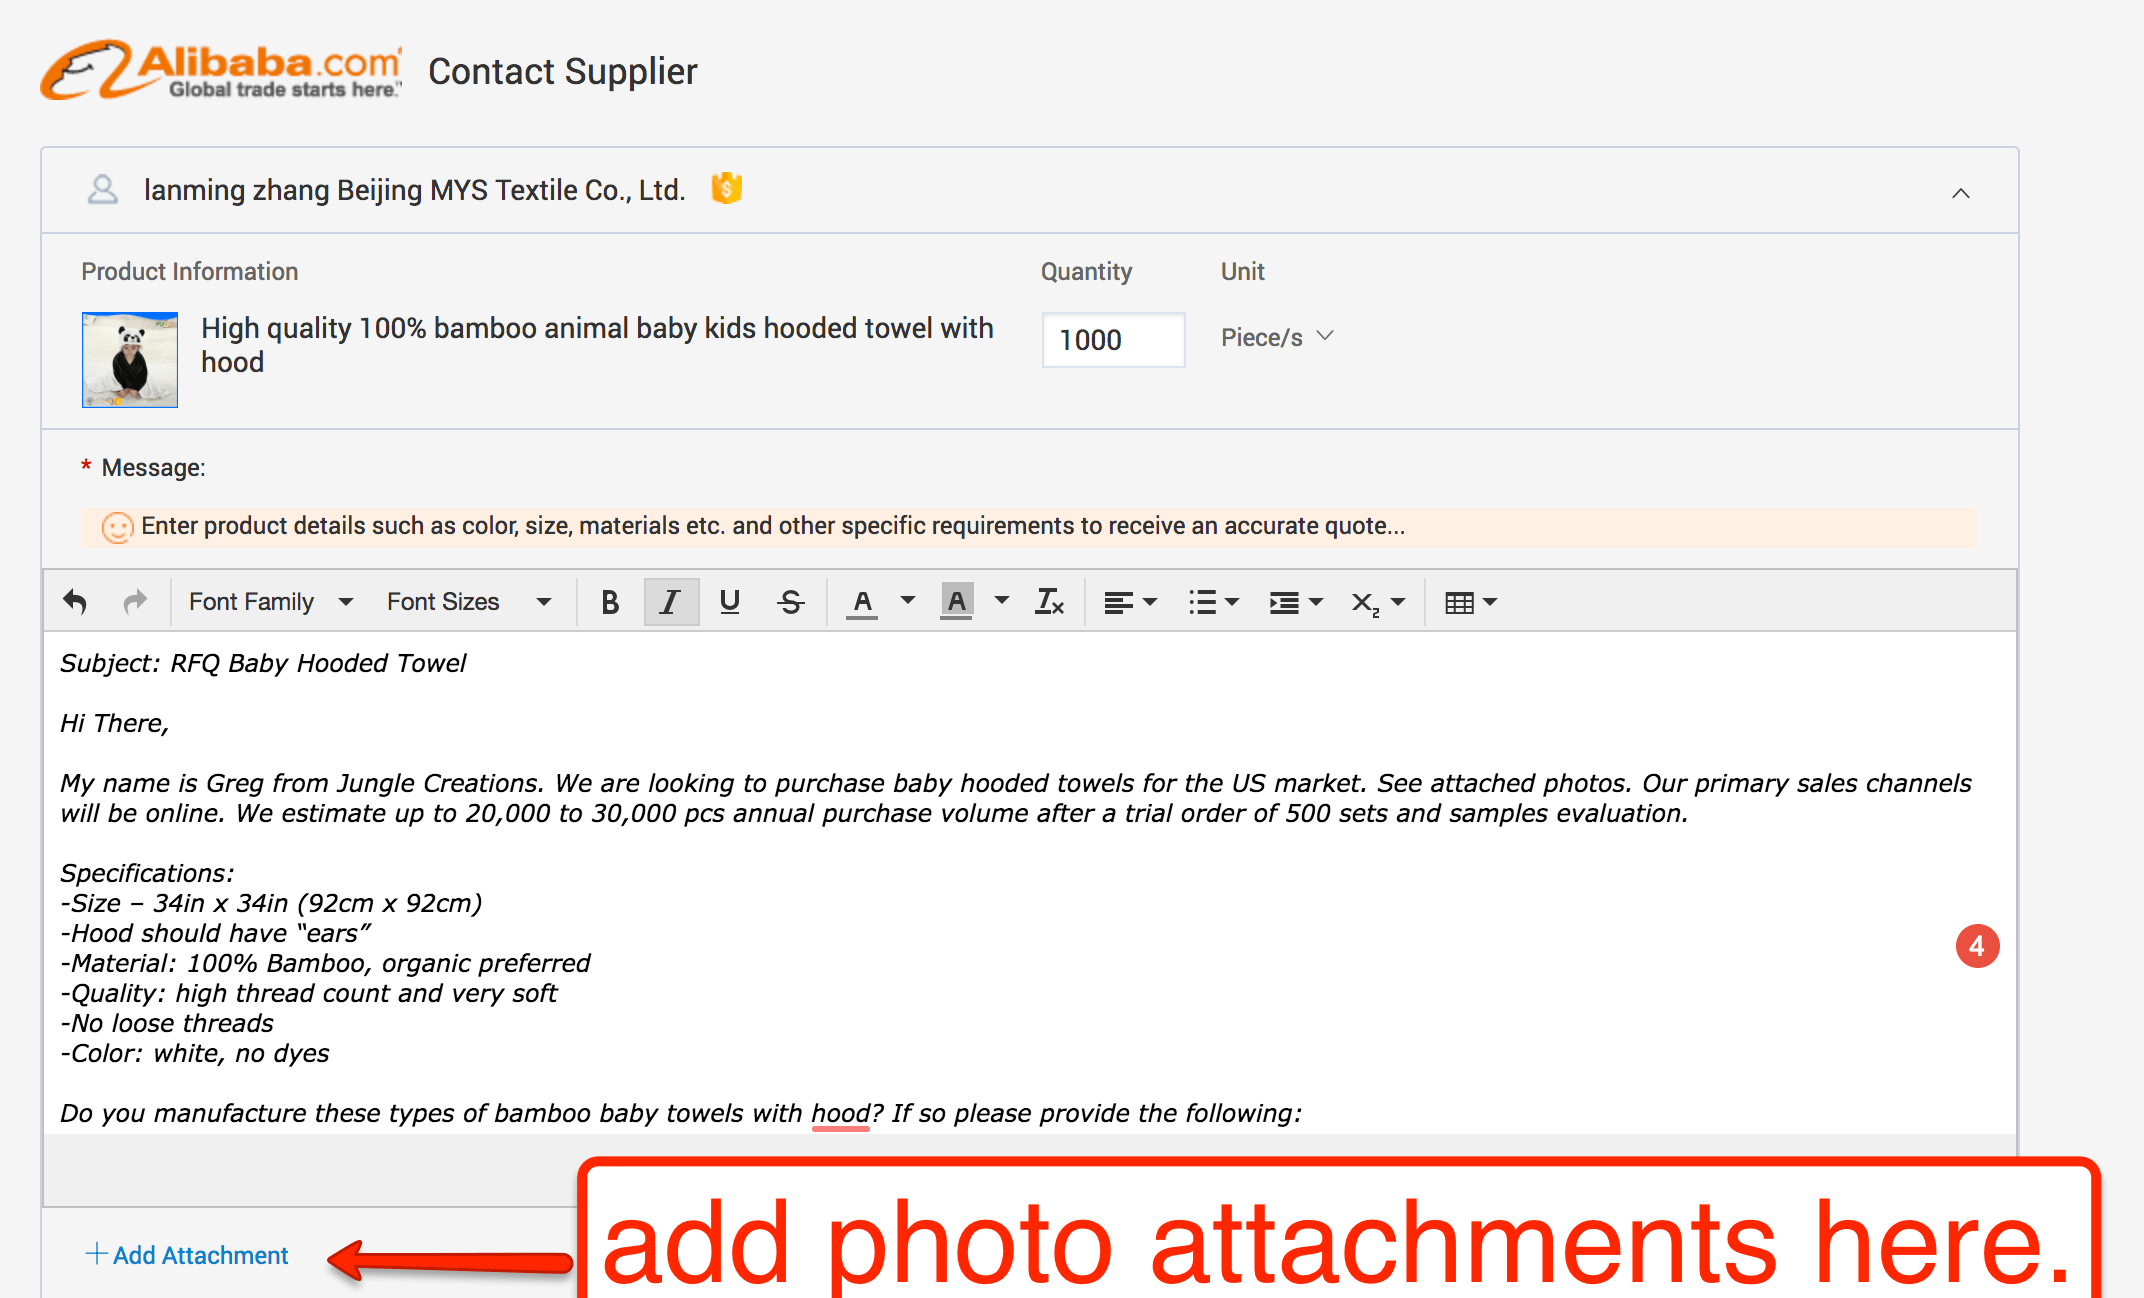 copypaste your template and fire it off but first dont forget to also include the image attachments to help explain your request in greater detail